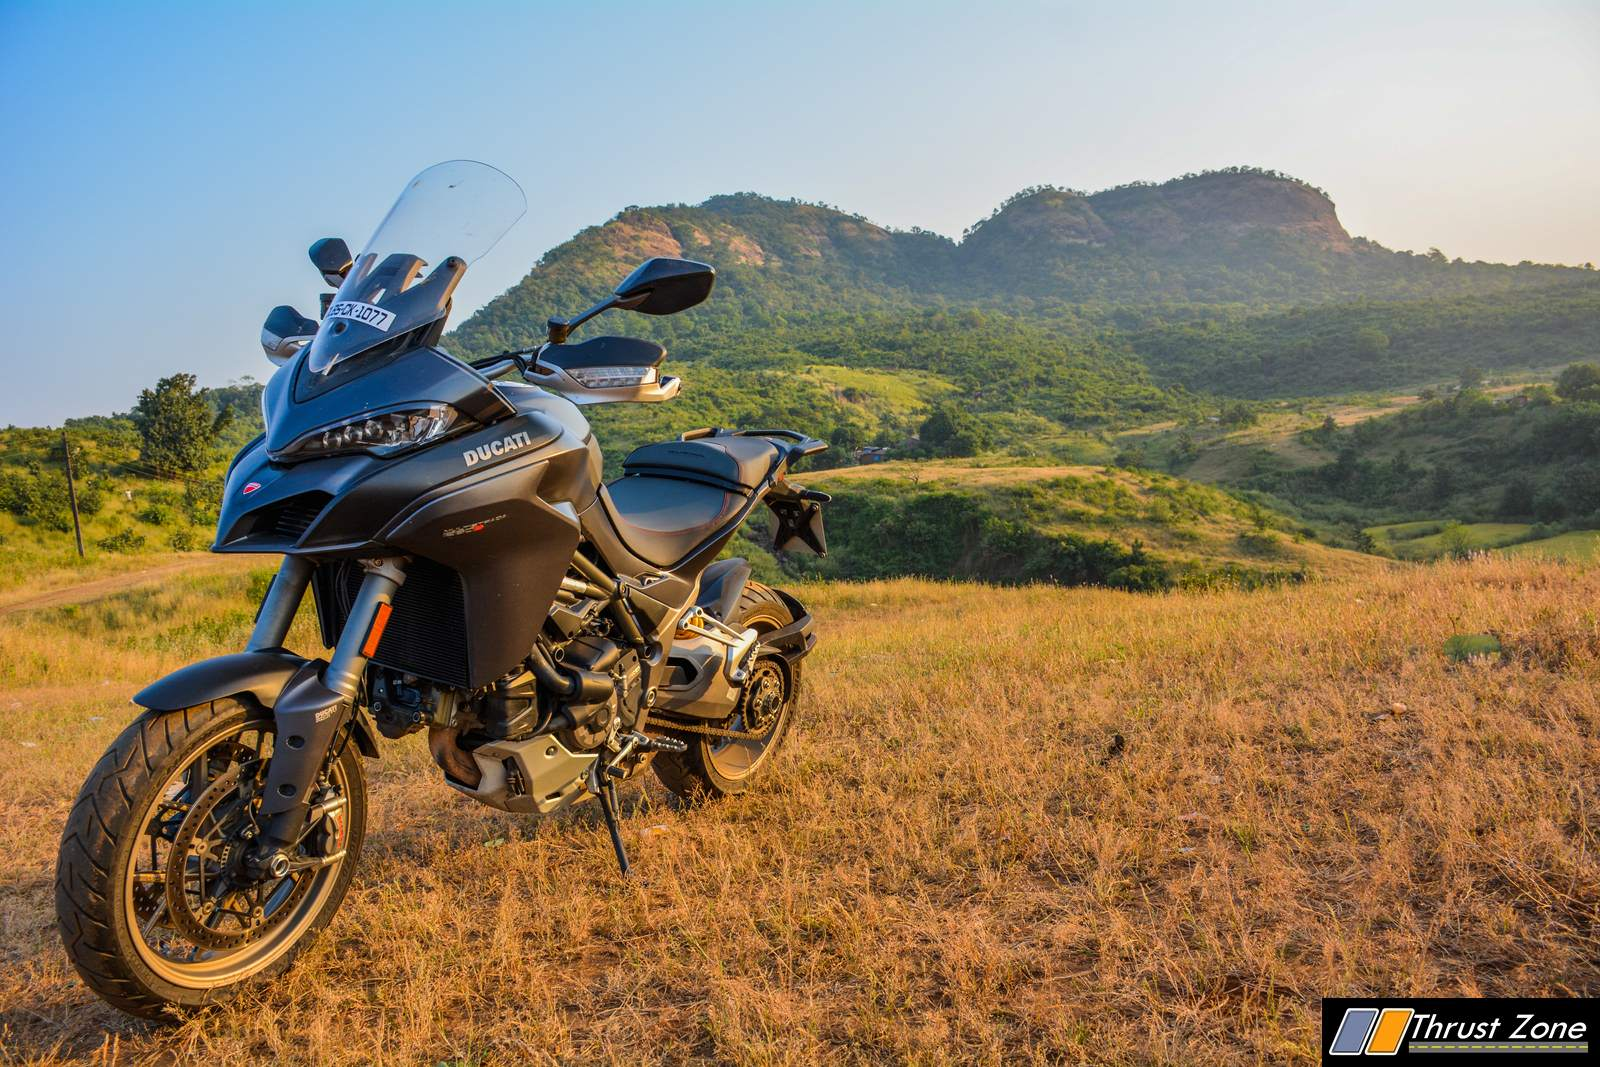 https://www.thrustzone.com/wp-content/uploads/2018/11/2018-Ducati-Multistrada-1260-India-Review-38.jpg